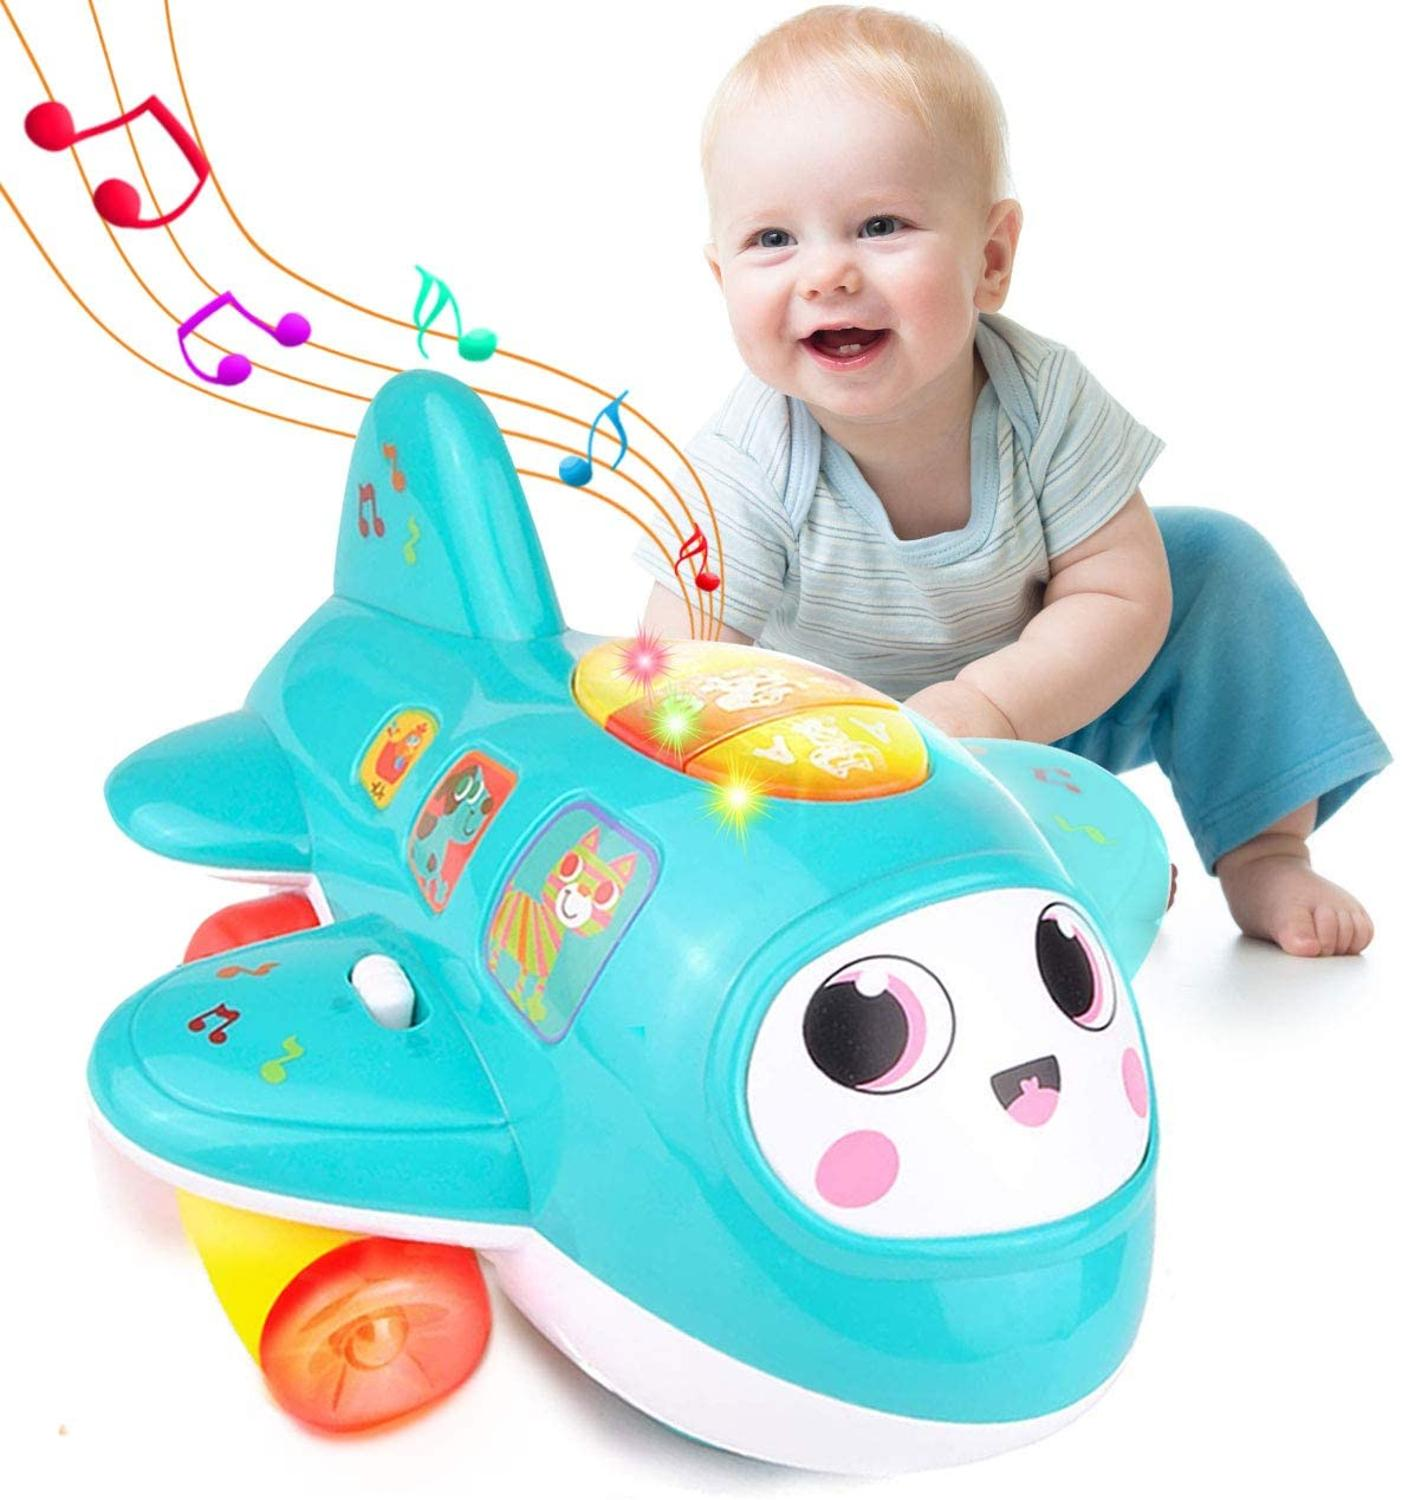 HISTOYE Baby Plane Toys For 1 Year Old Electronic Musical Airplane Toy For Toddlers Early Learning Educational Toys For Kids